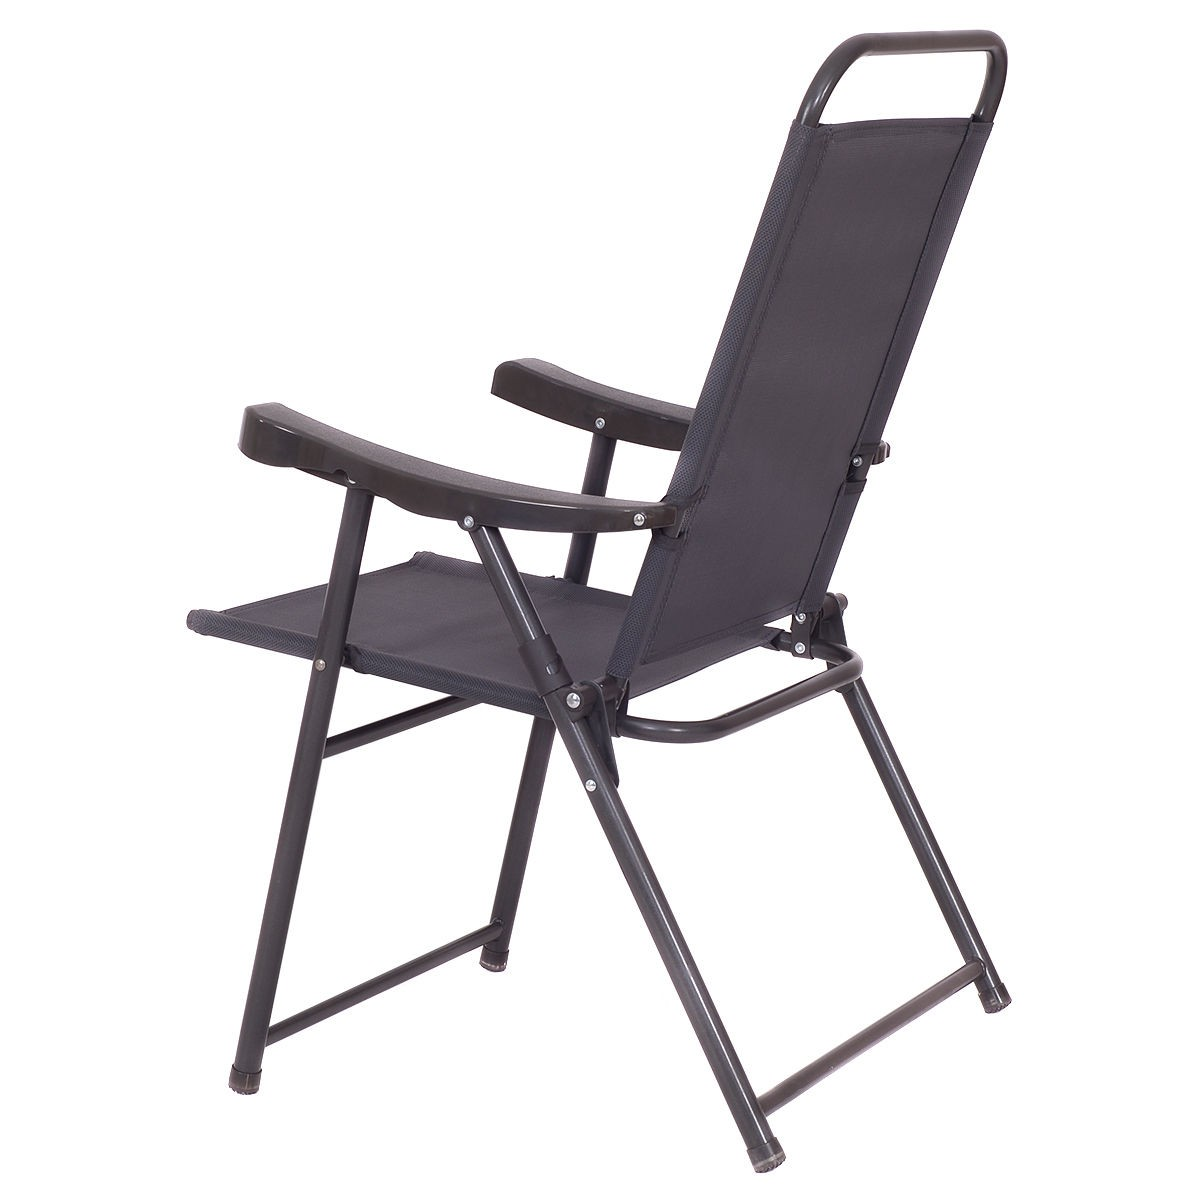 Patio Folding Chairs 4pcs Folding Sling Chairs With Armrest Textiliene Outdoor